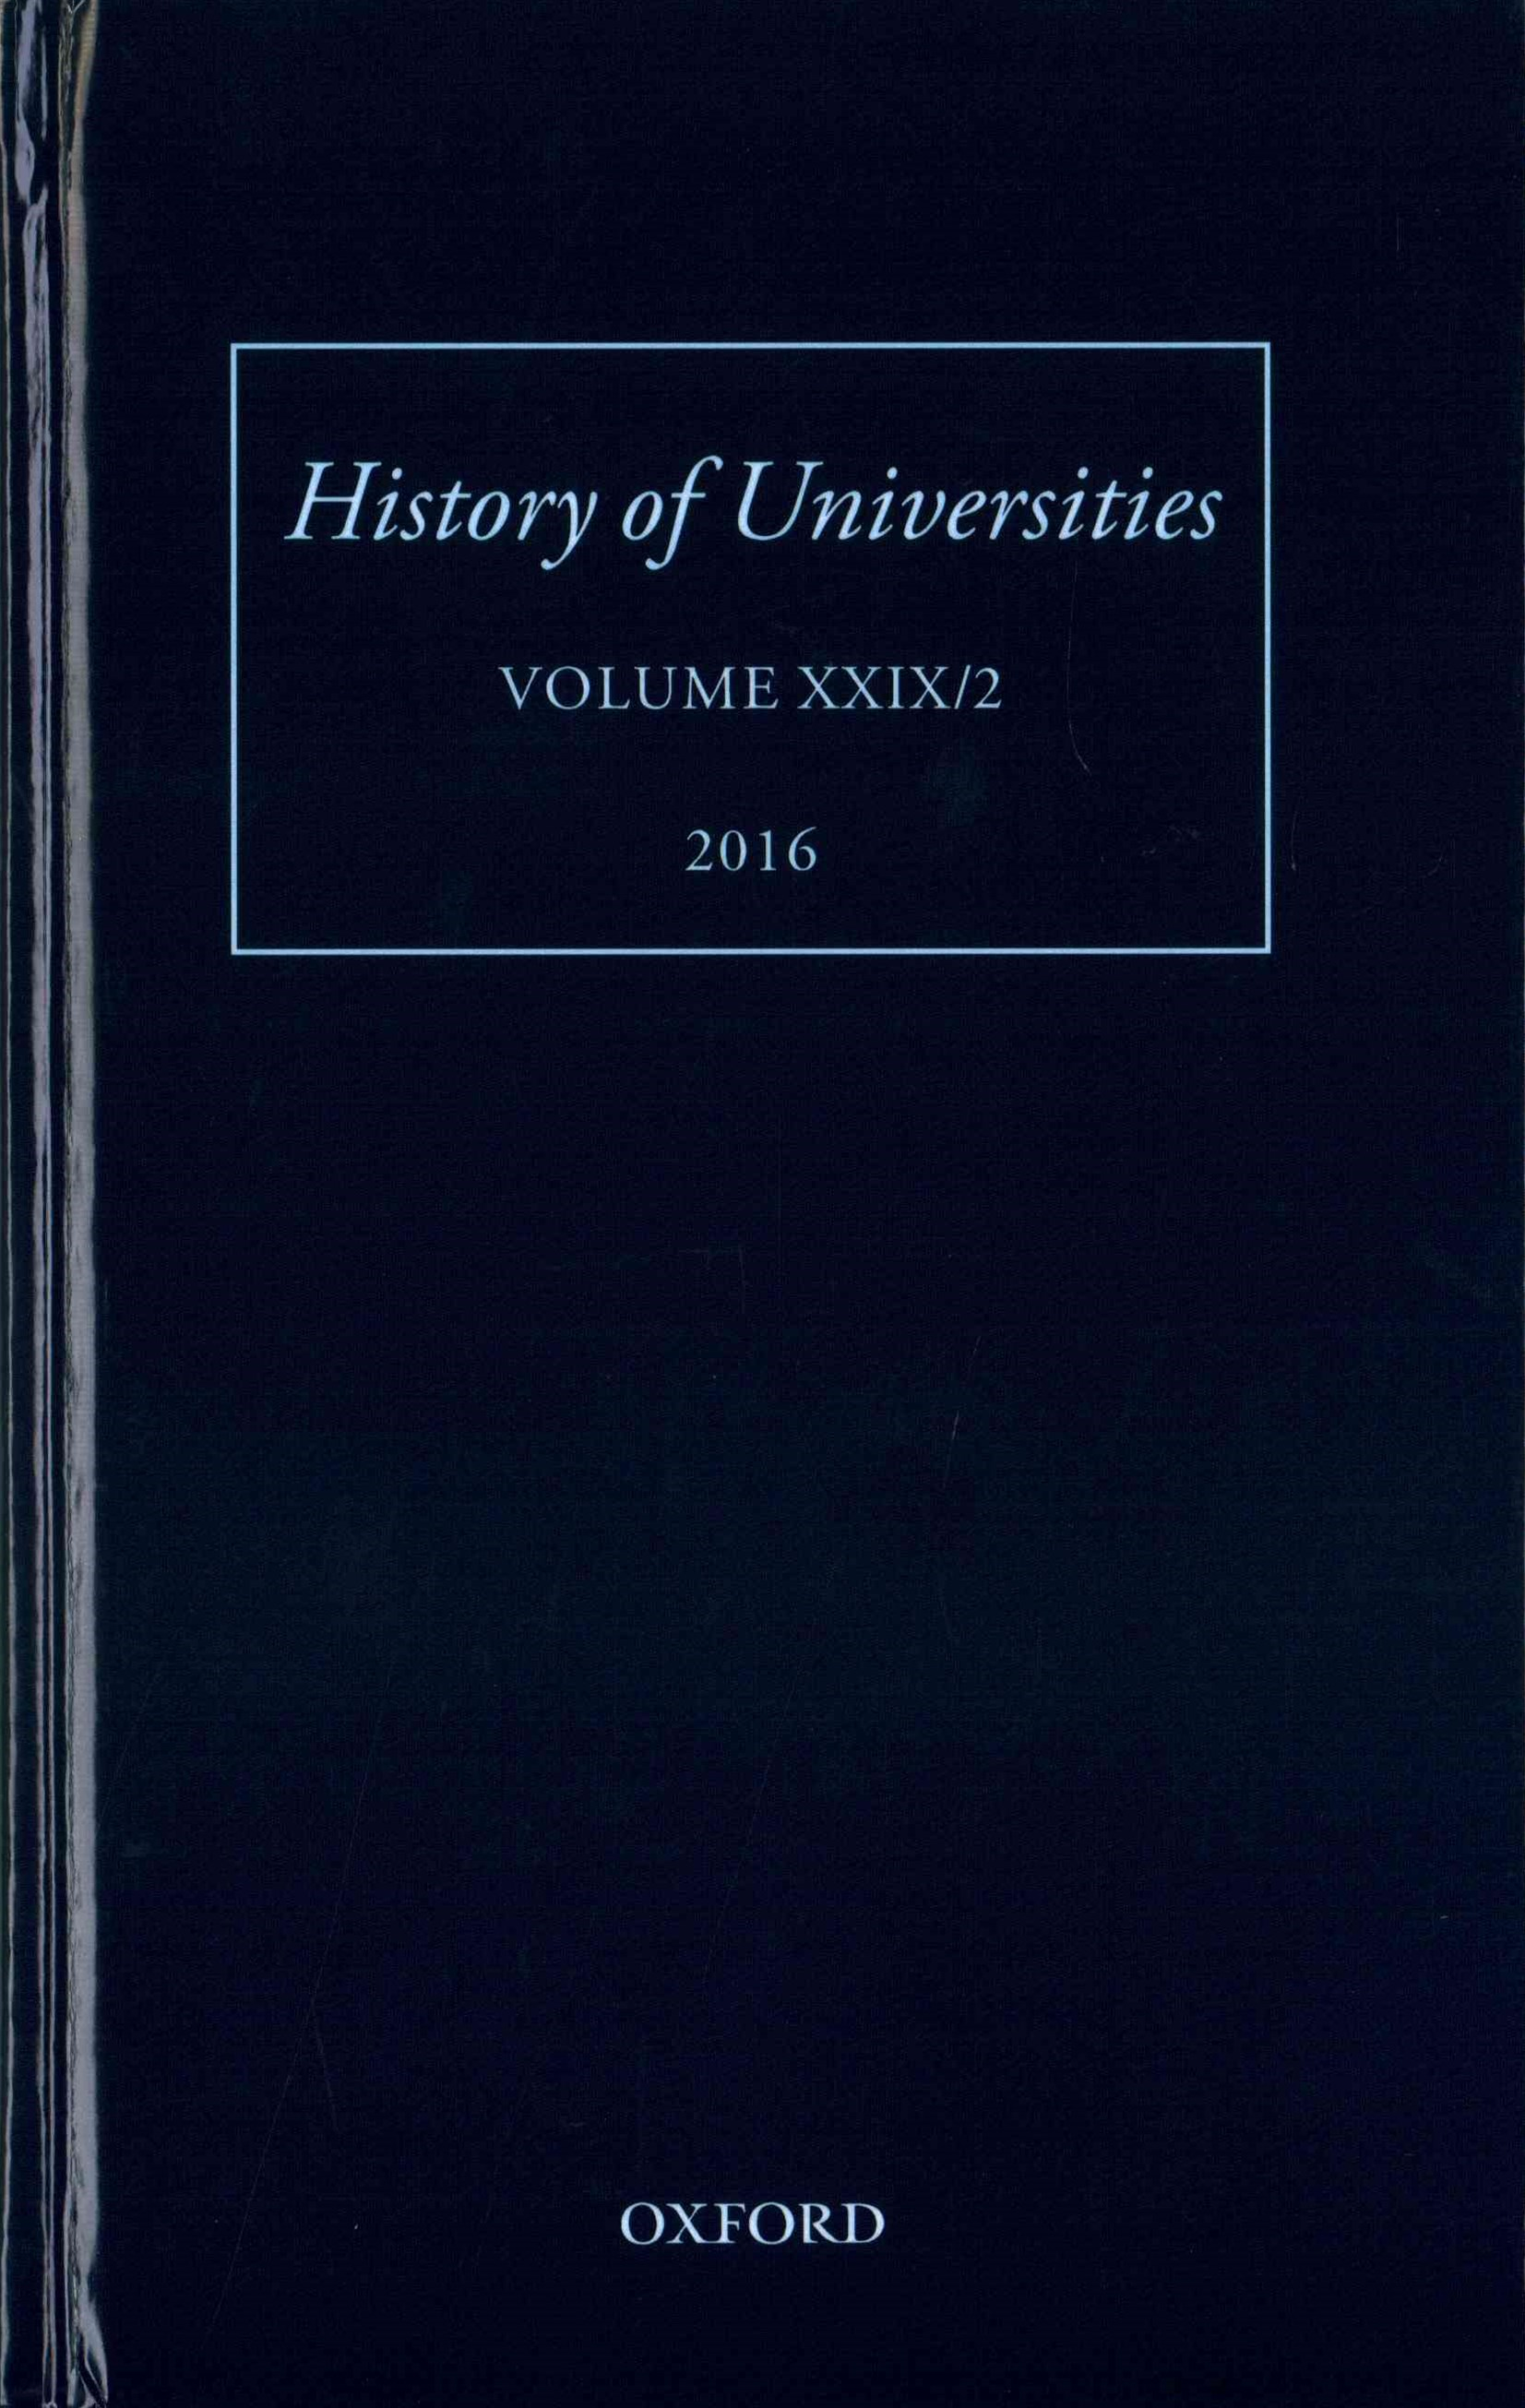 History of Universities Volume XXIX / 2